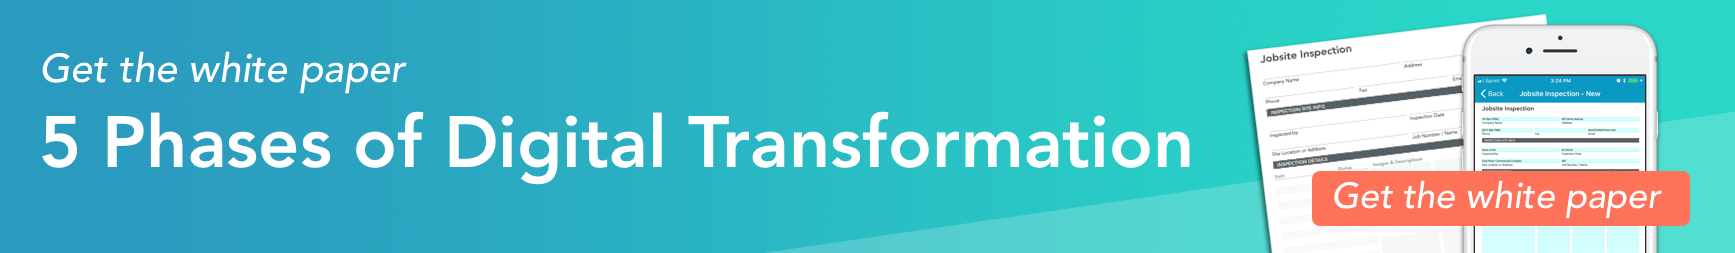 get our free white paper: the 5 phases of digital transformation